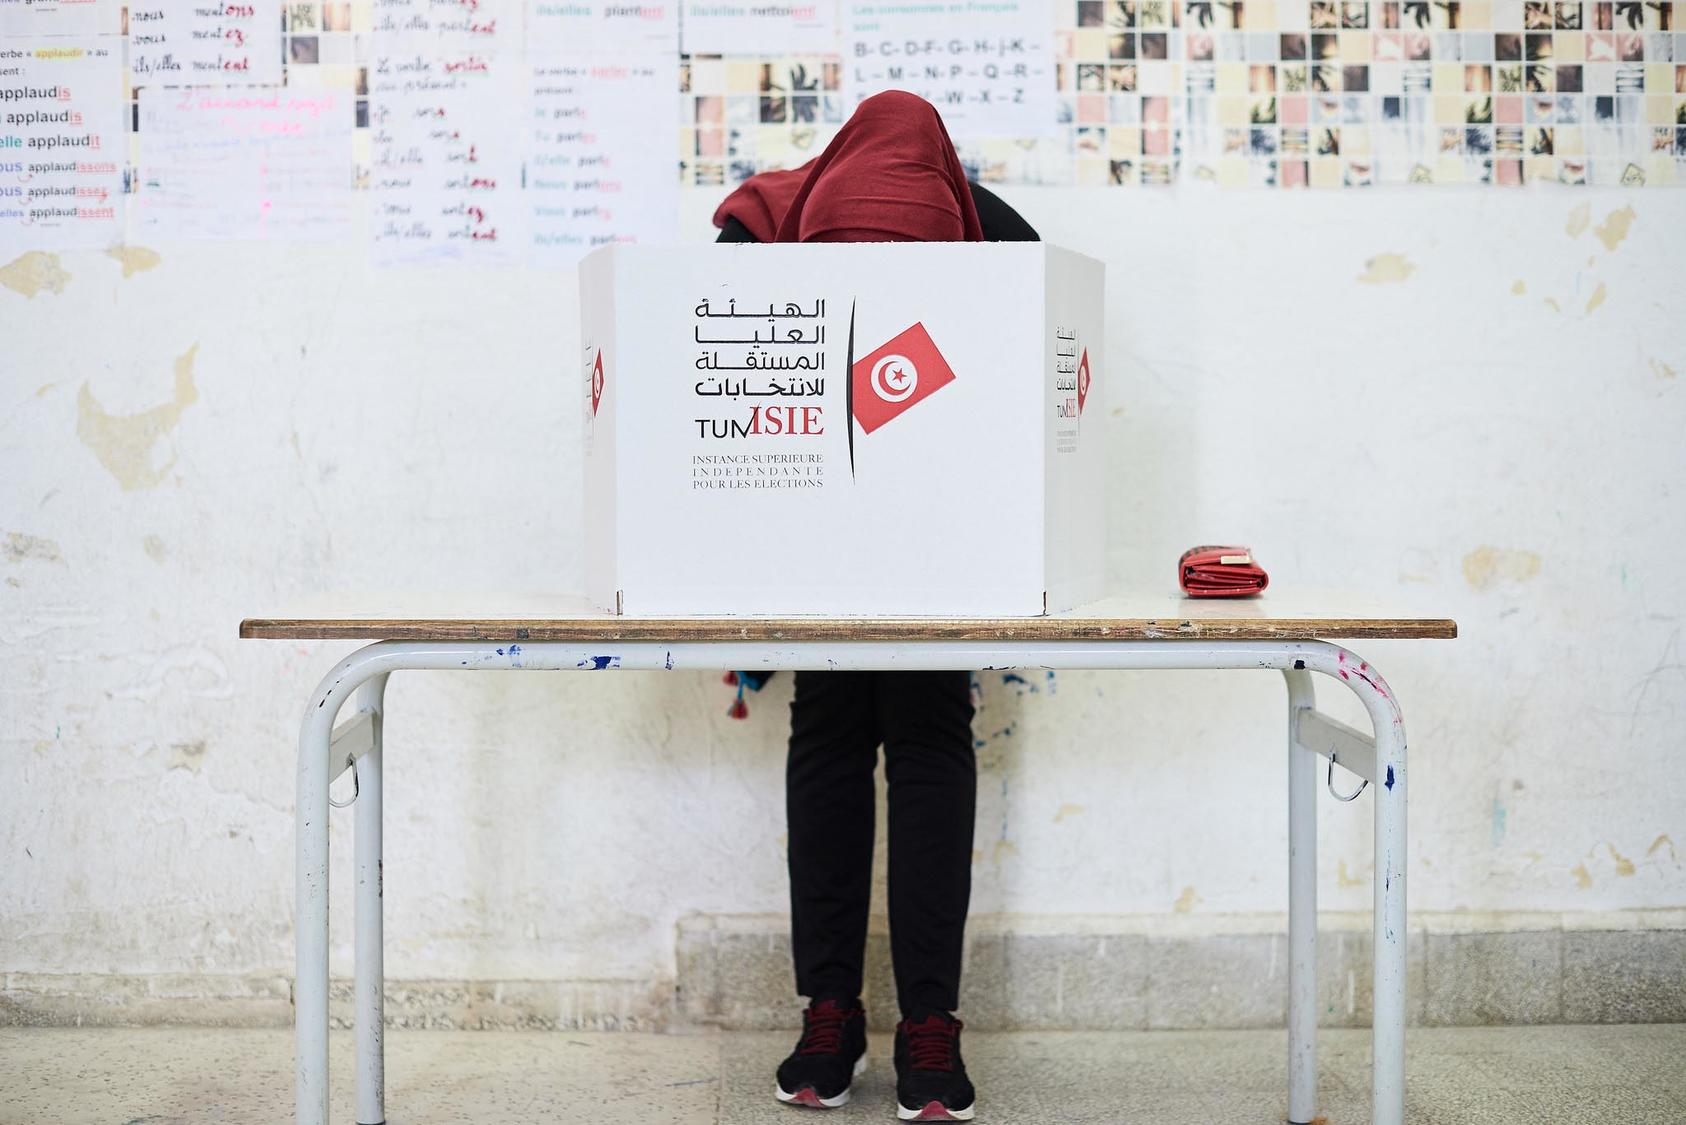 A woman fills out her ballot in the Tunisian election